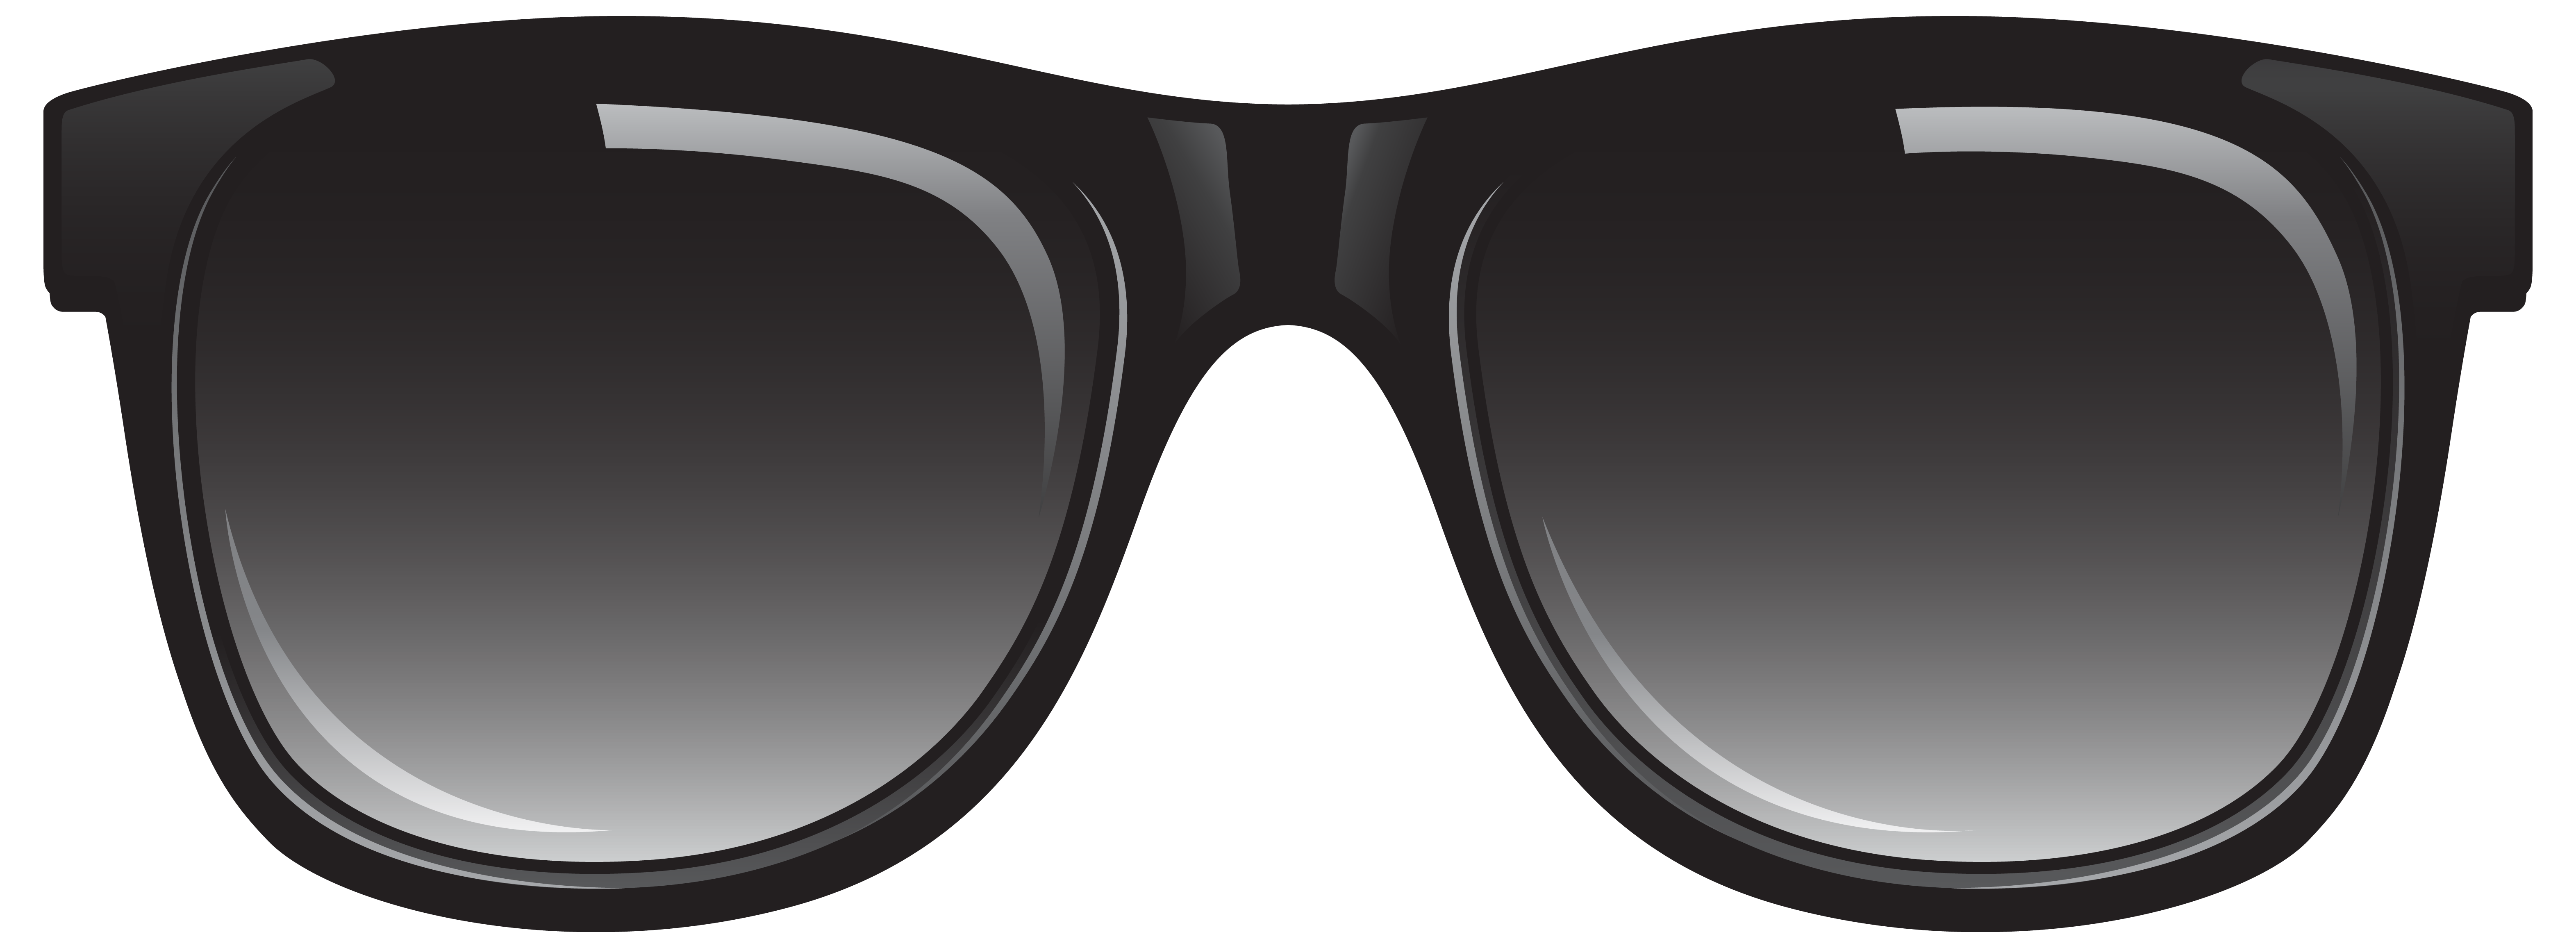 Black Sunglasses Png Clipart Image Gallery Yopriceville High Quality Images And Transparent Png Free Clipart Black Sunglasses Clip On Sunglasses Clip Art